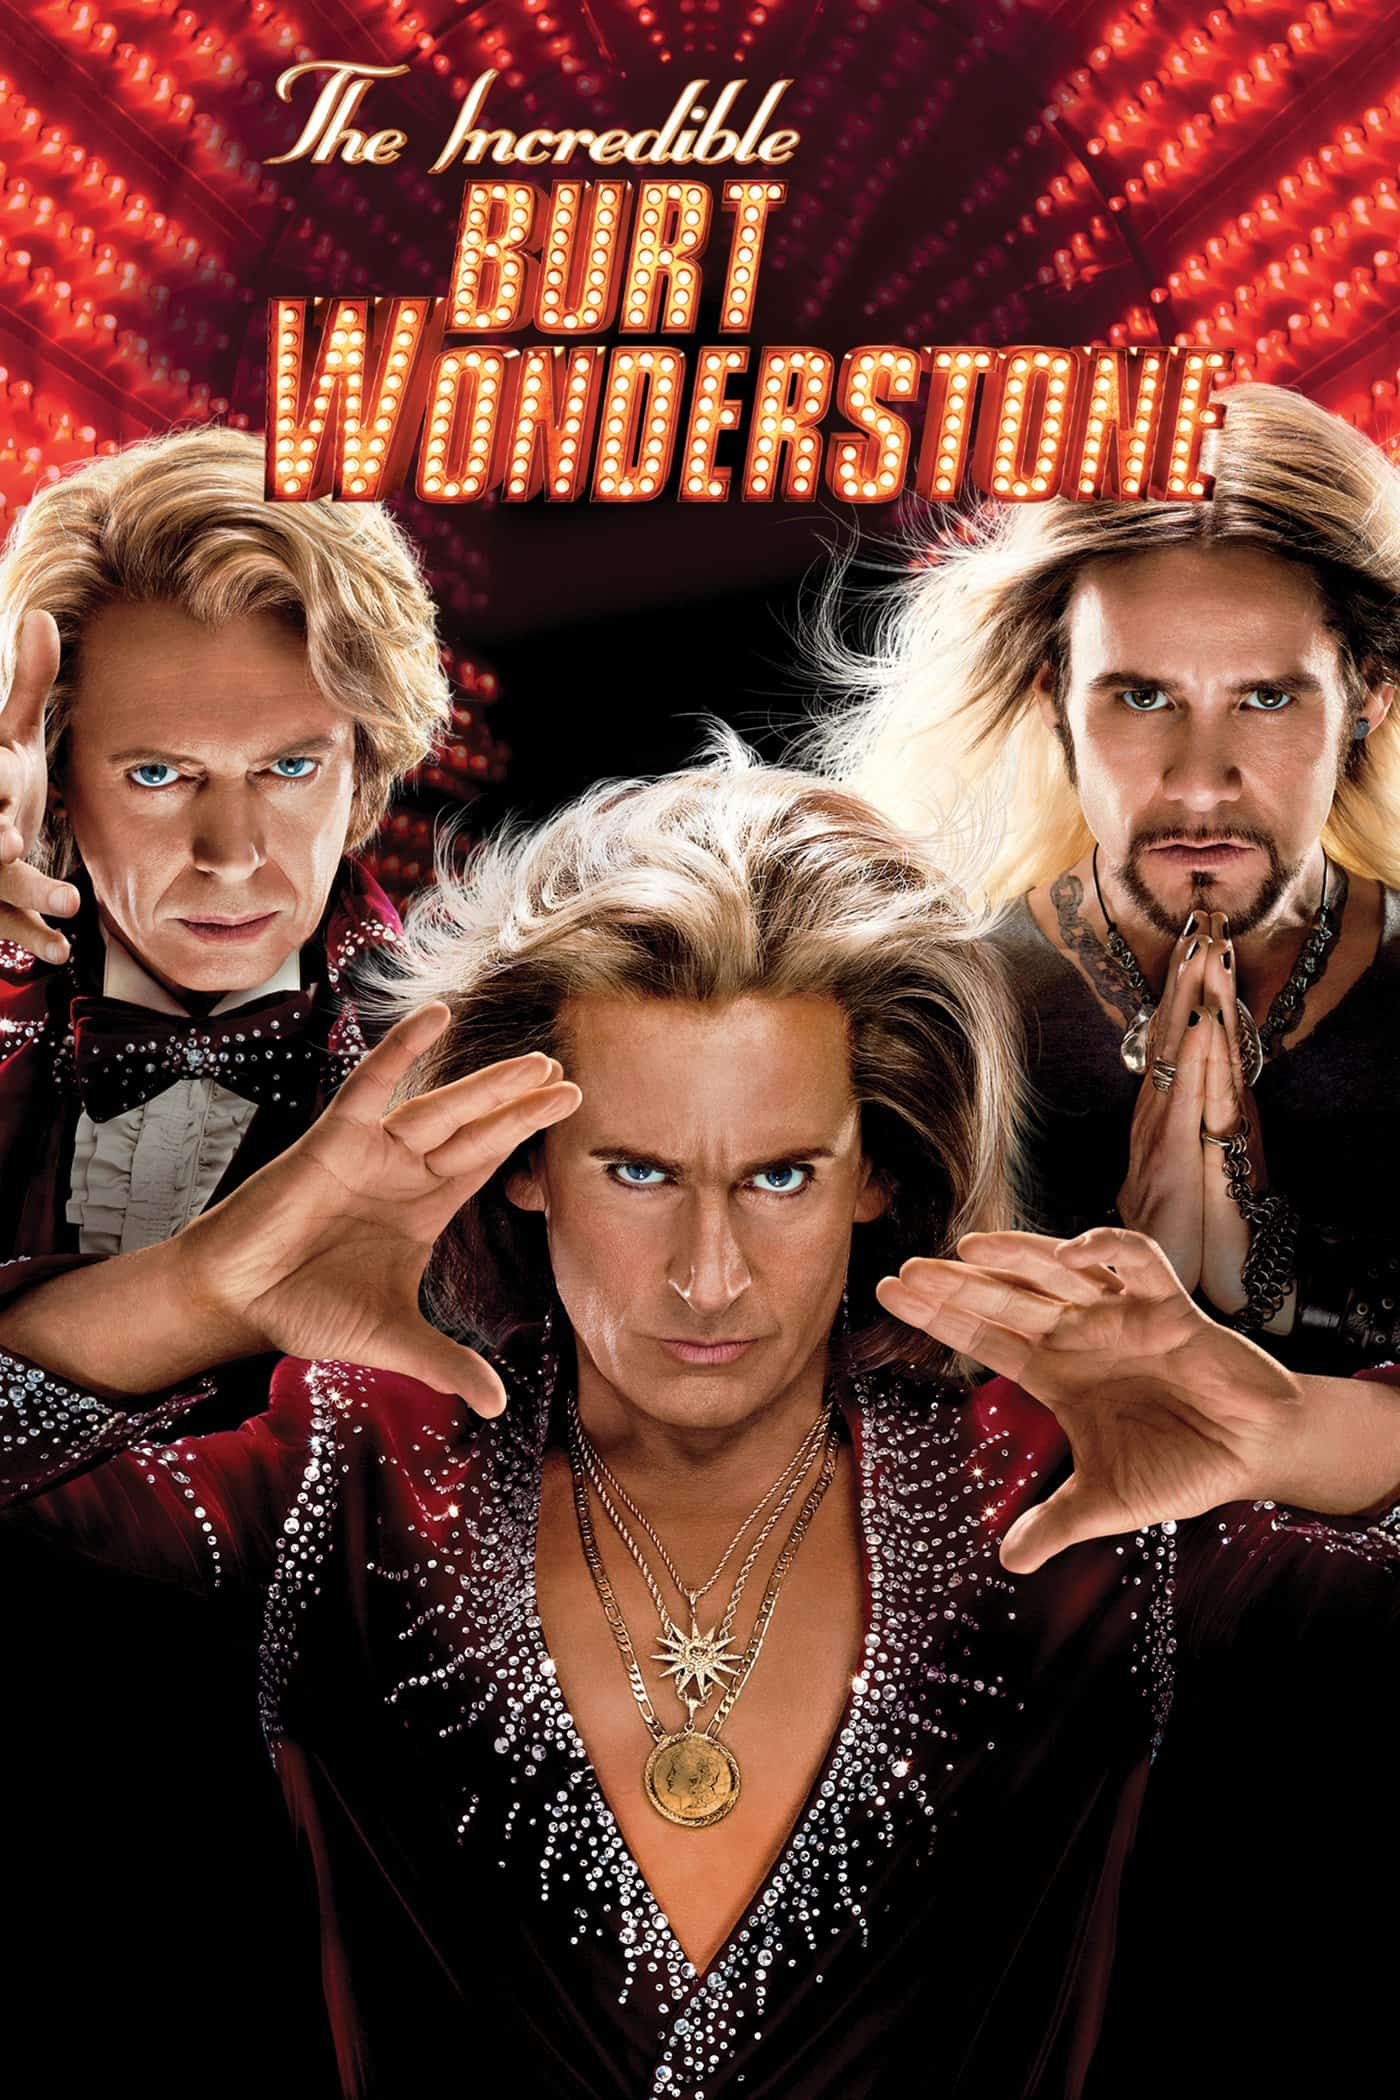 The Incredible Burt Wonderstone, 2013